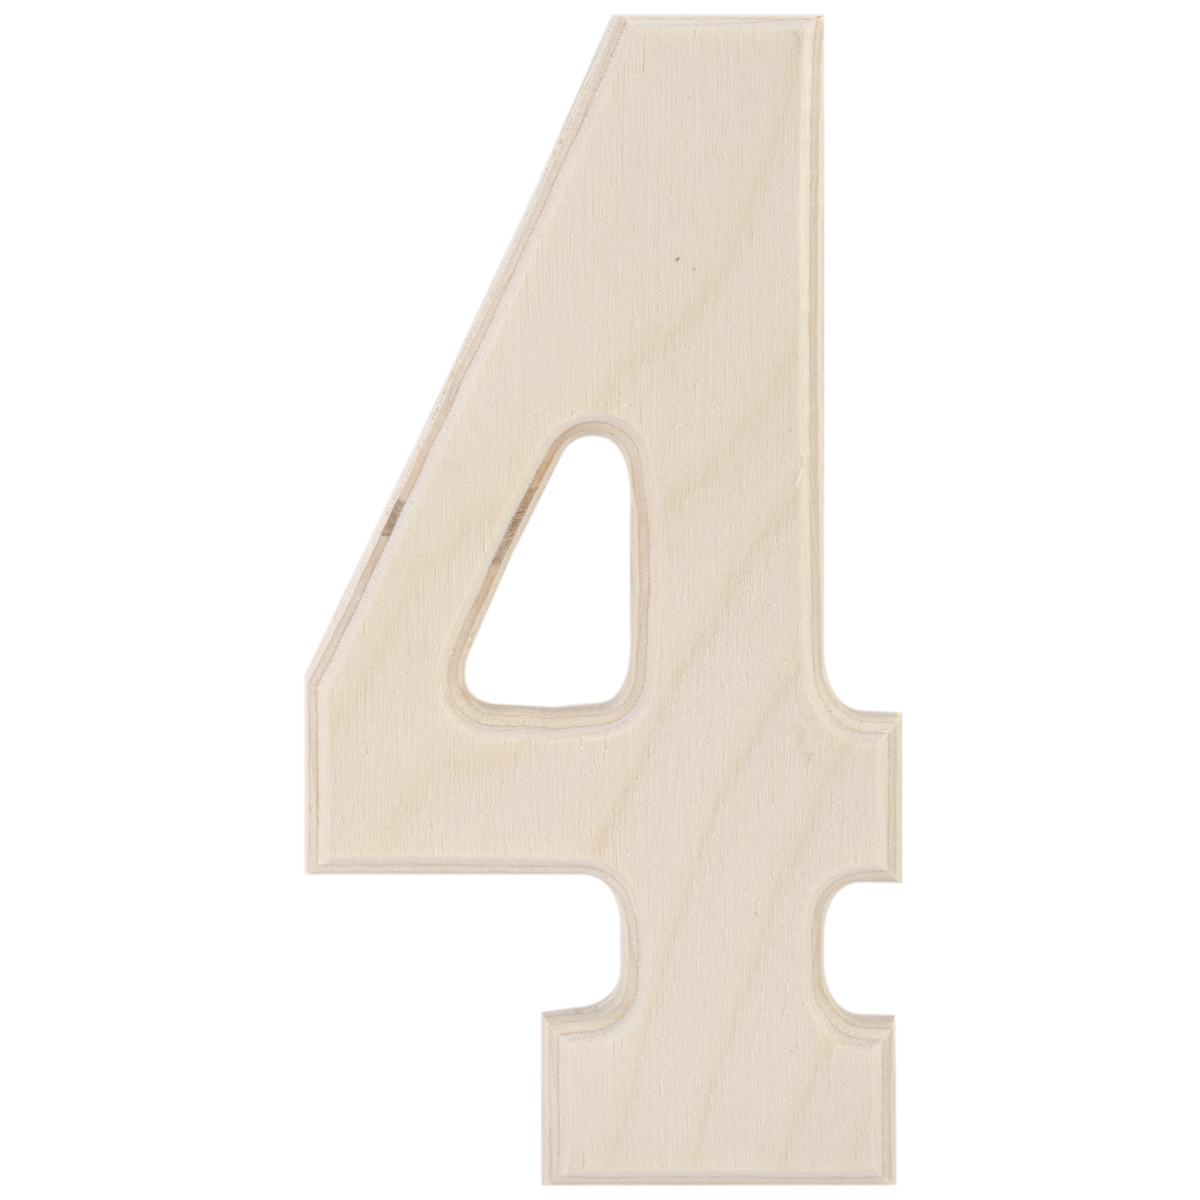 5-Inch Letter-S MPI Baltic Birch University Font Letters and Numbers